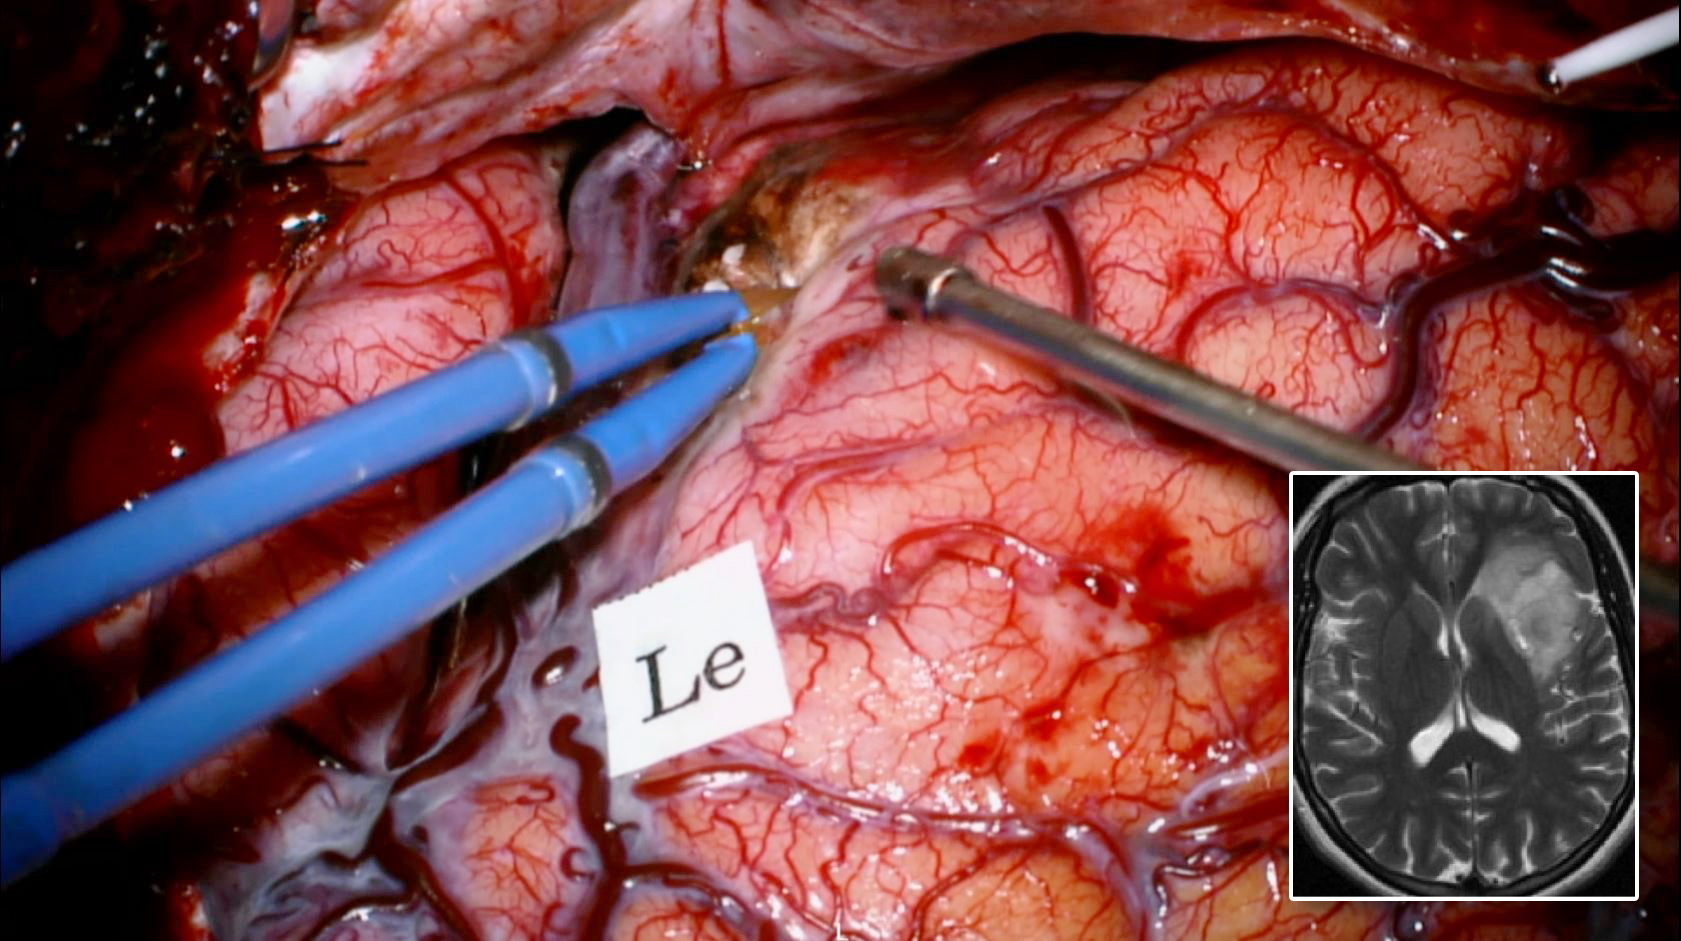 Figure 13: After initial removal of this left insular tumor (inset) through the trans-Sylvian route, the motor speech area was mapped (Le) on the inferior frontal gyrus. Additional corticotomy in the negatively mapped frontal opercula allowed further uncovering and exposure of the frontal and superior poles of the tumor.